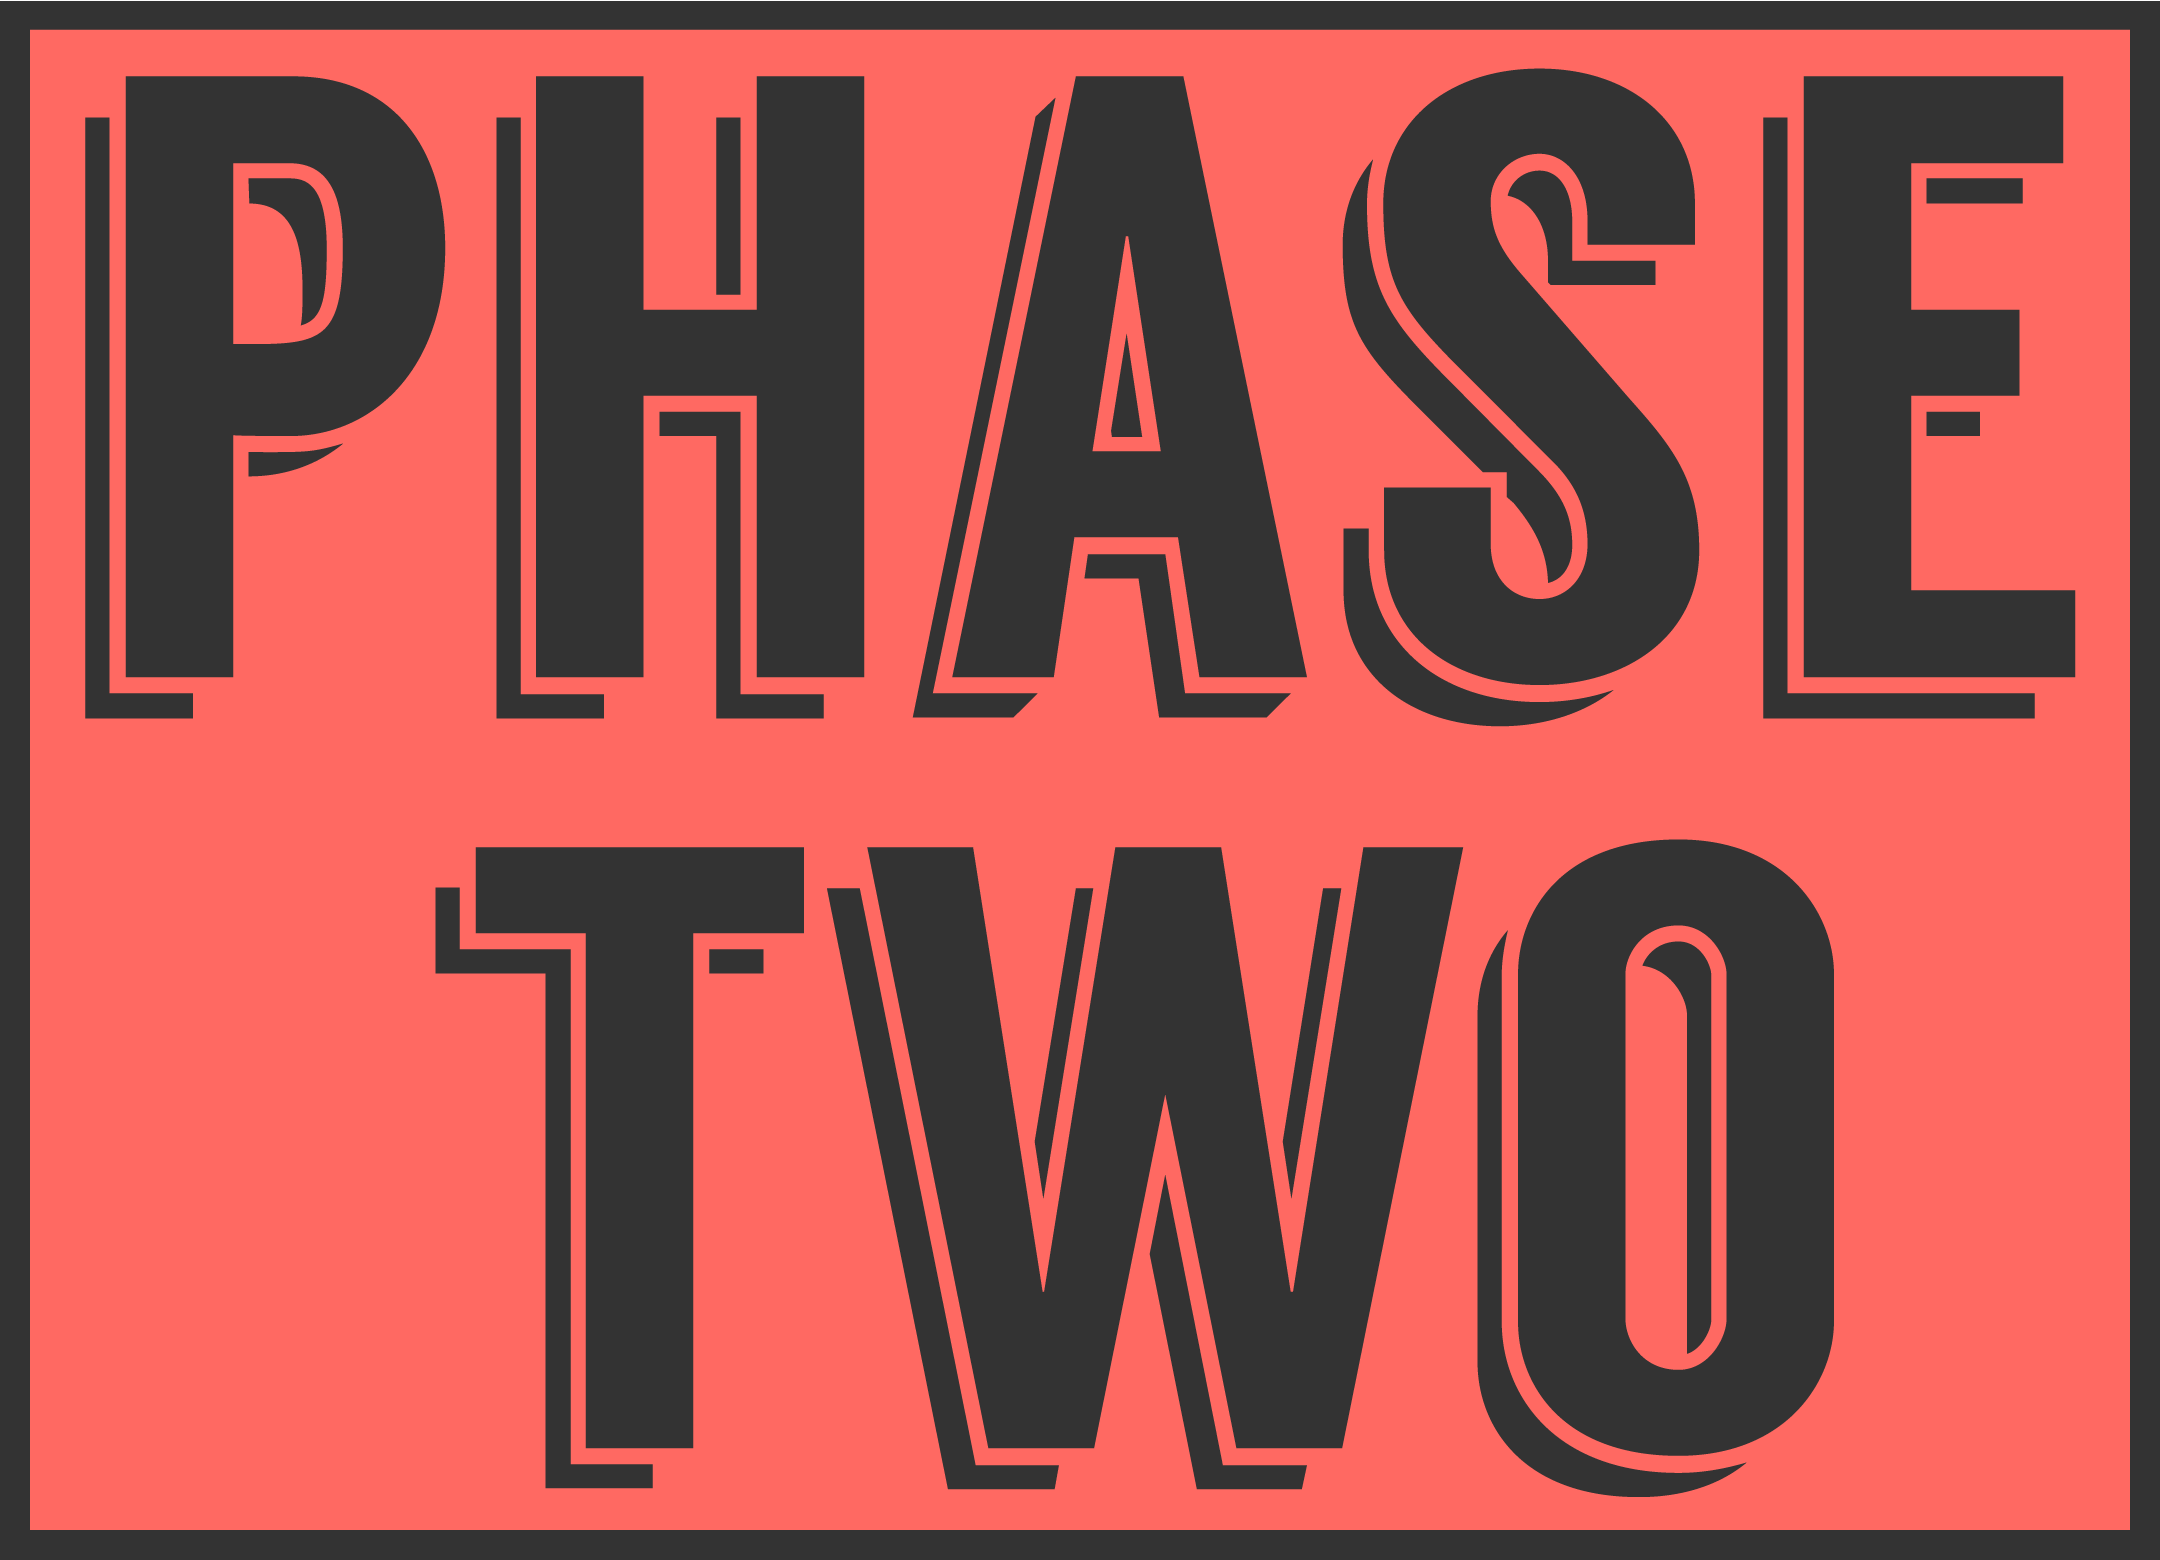 Wait! Complete Phase One prior to entering Phase Two,